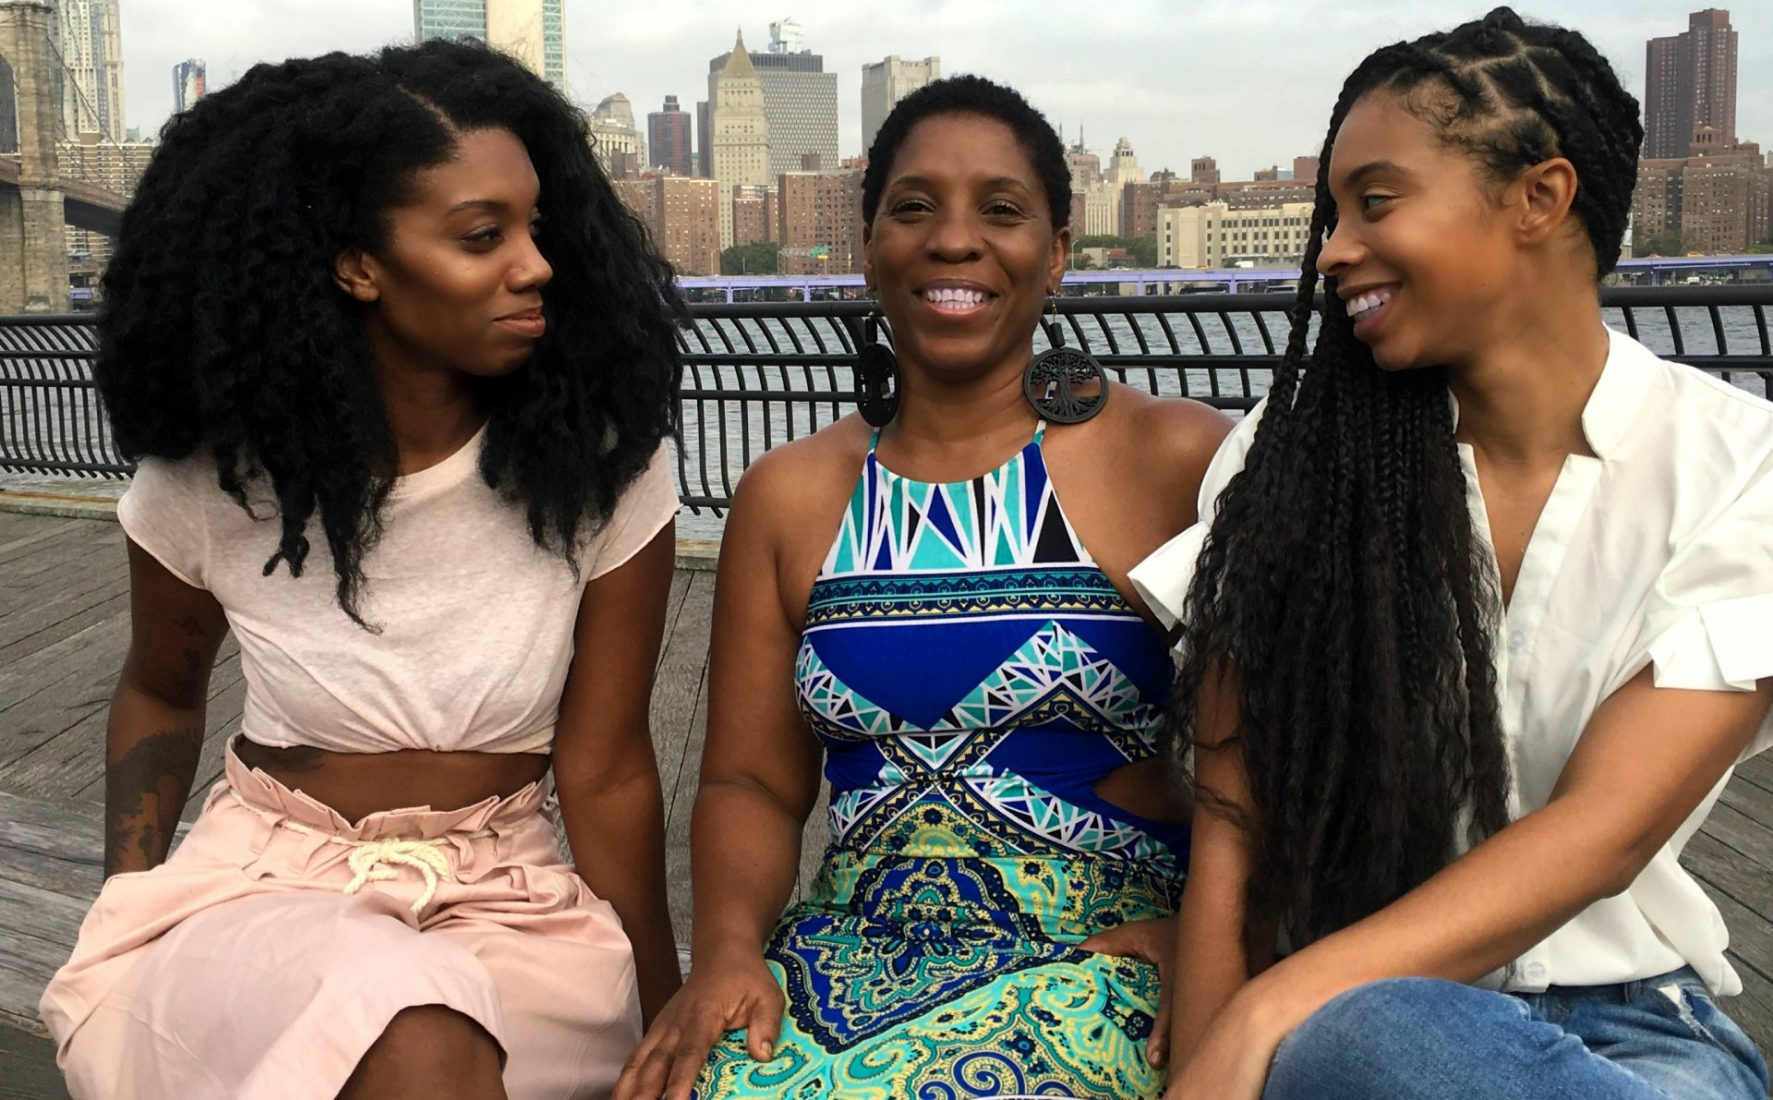 Belle Bar is Empowering Women of Color with All Natural, Handmade Skin and Haircare Products from New York